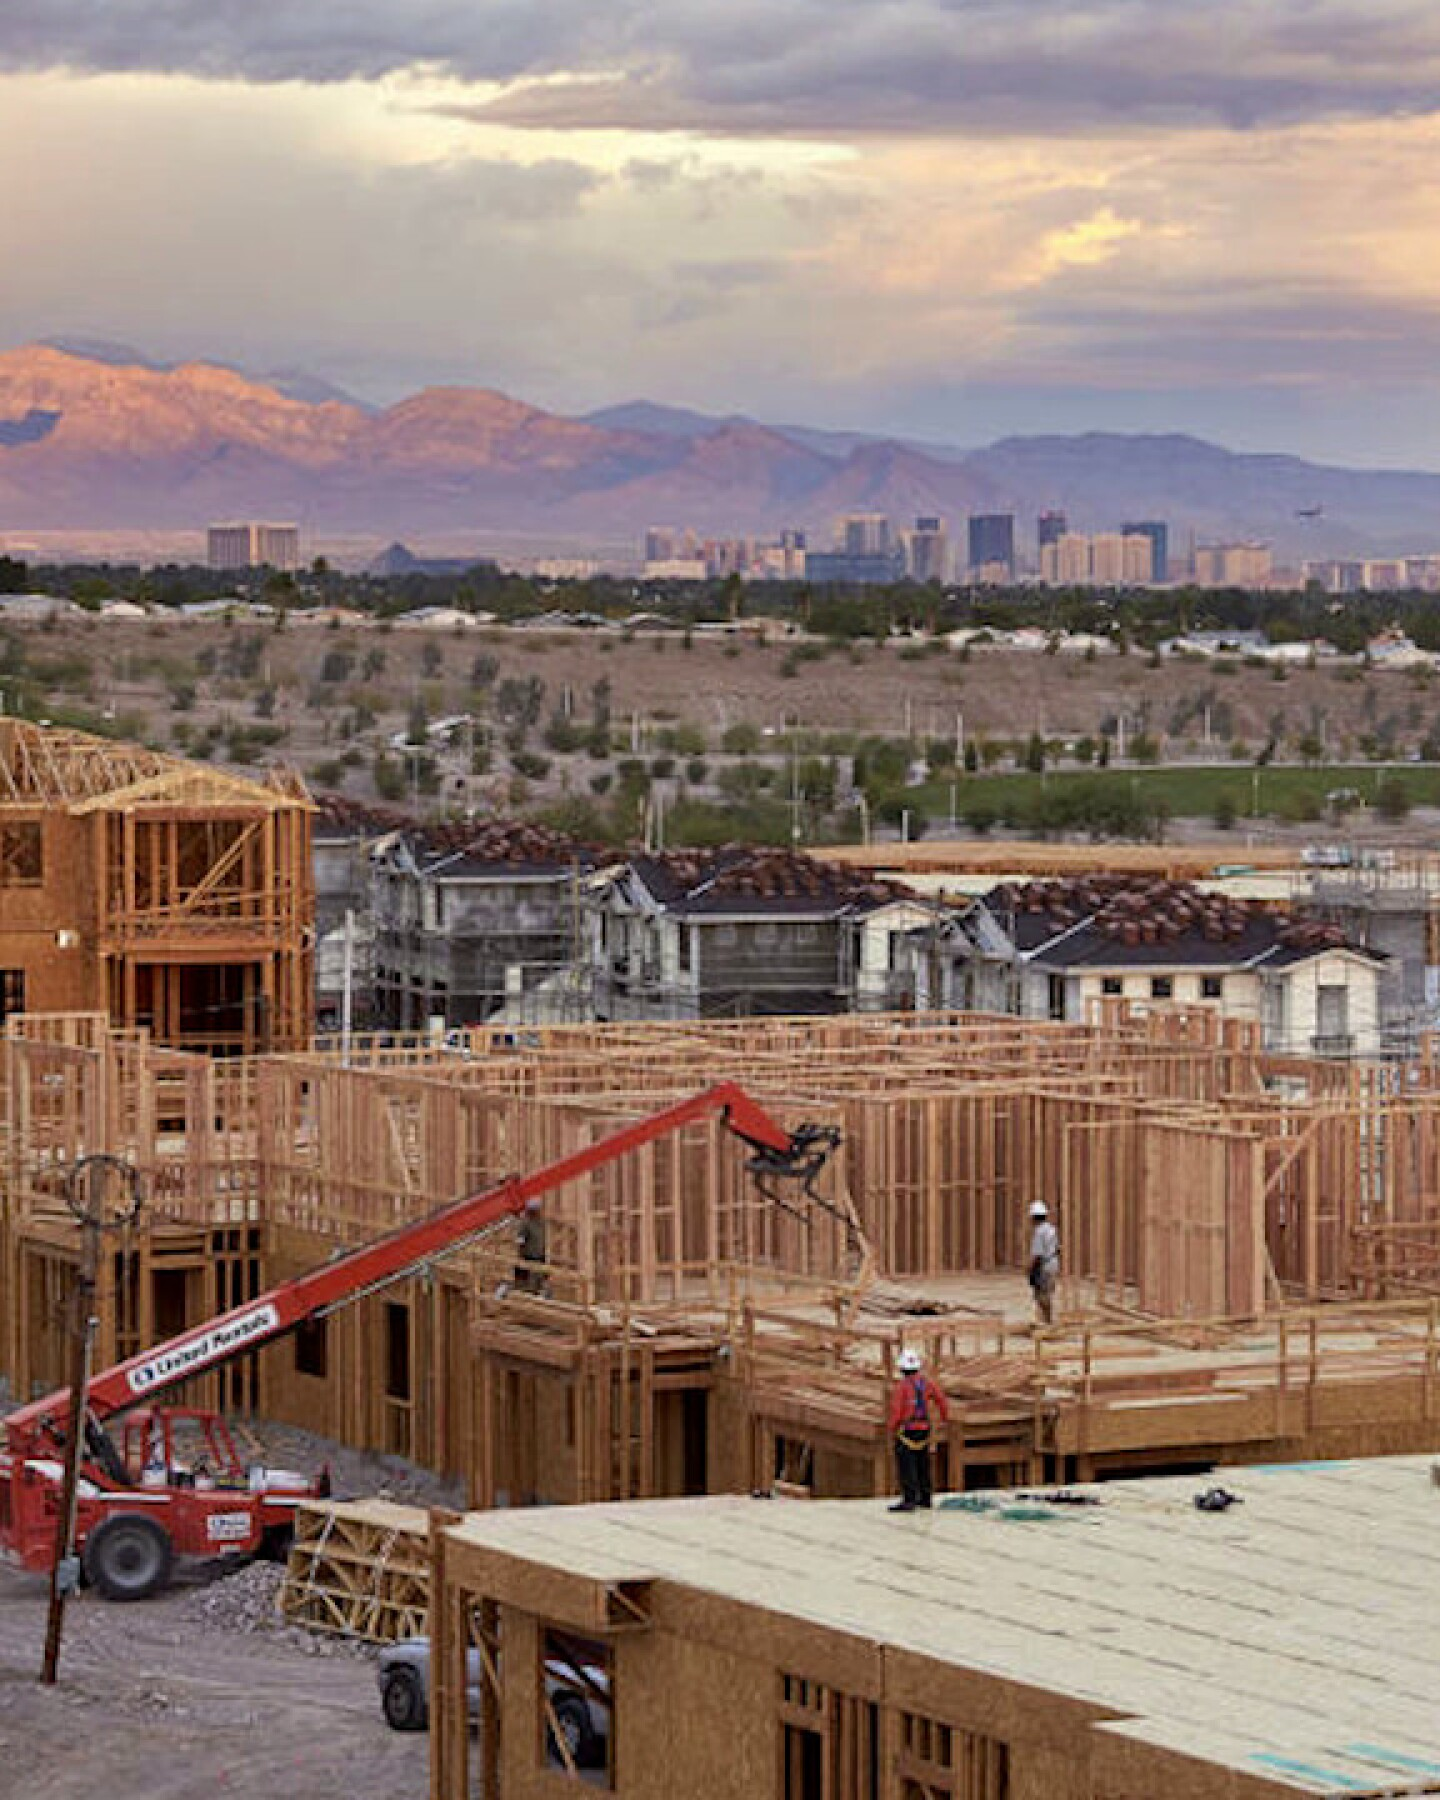 Booming Las Vegas (Courtesy of KCET)